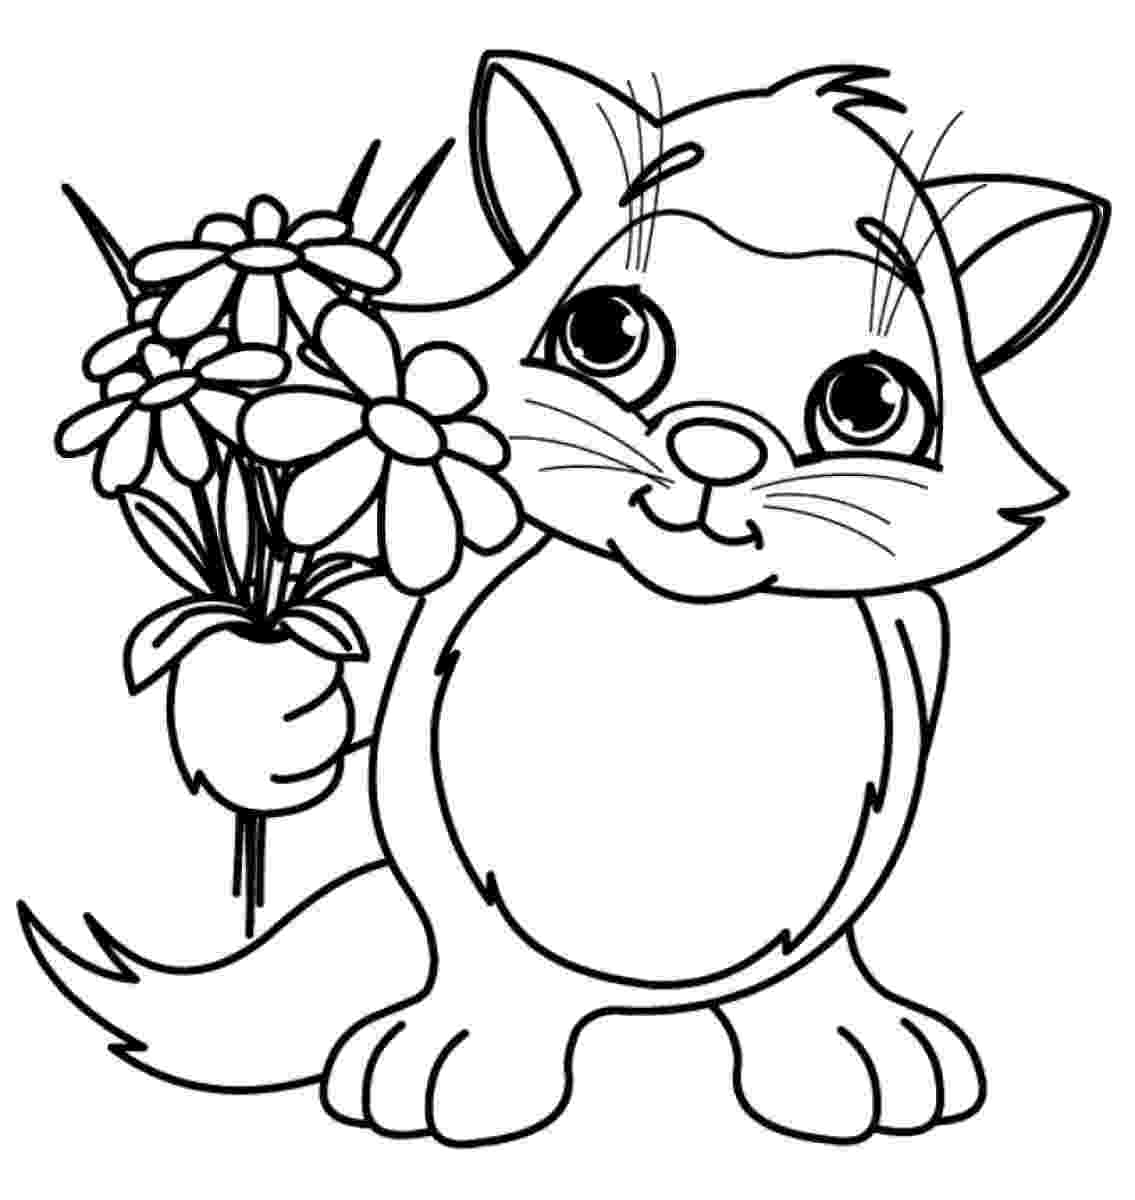 coloring flowers butterflies on flowers coloring page free printable coloring flowers